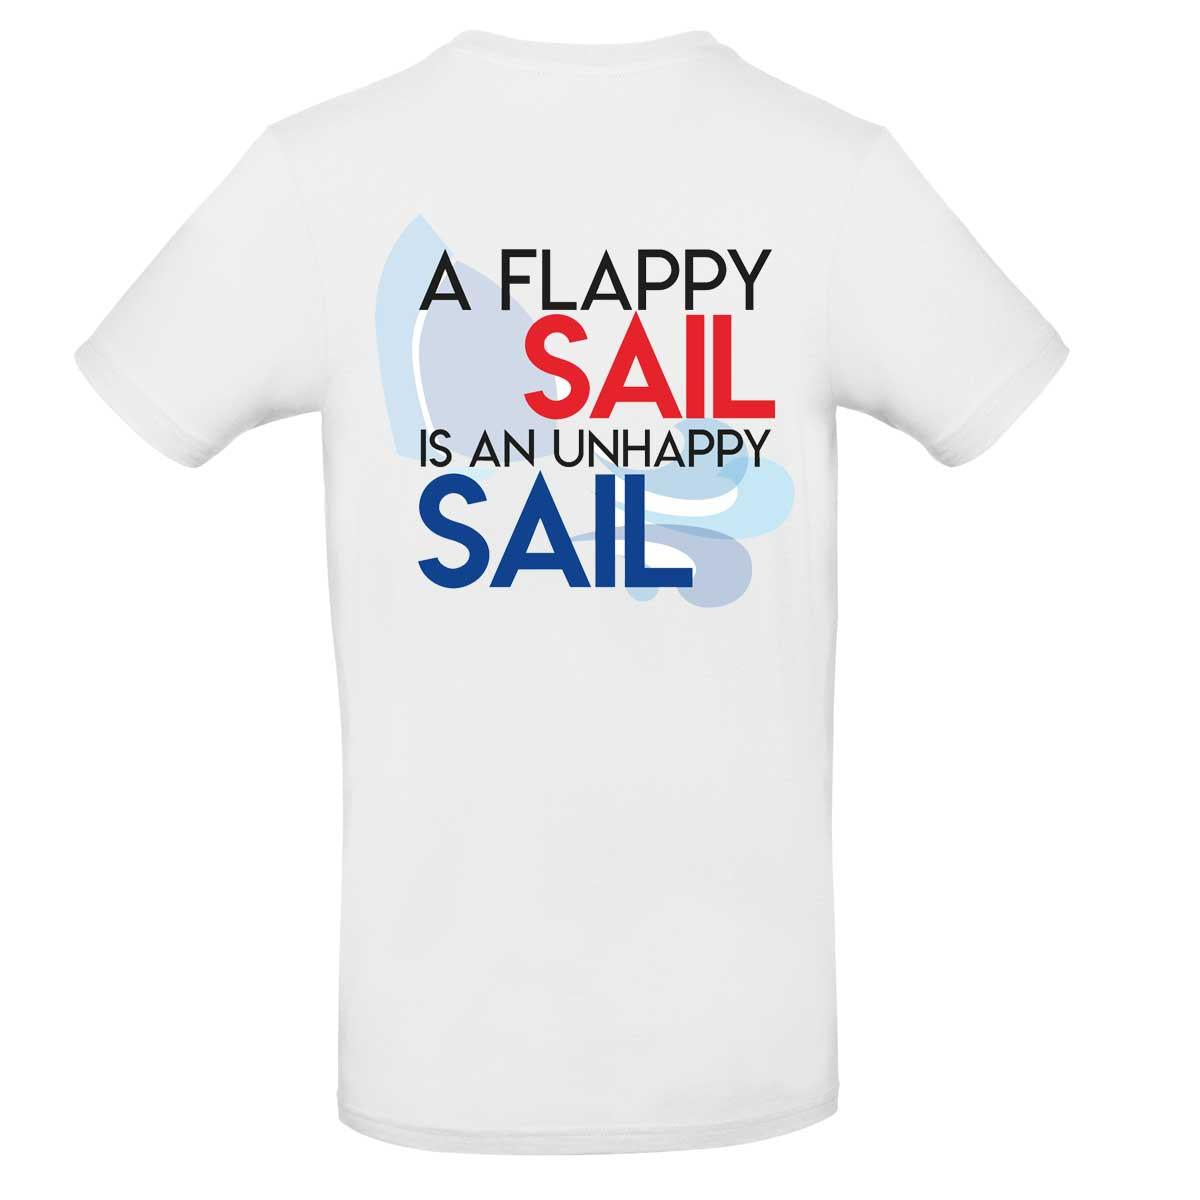 Mens T-Shirt - A Flappy Sail Is An Unhappy Sail